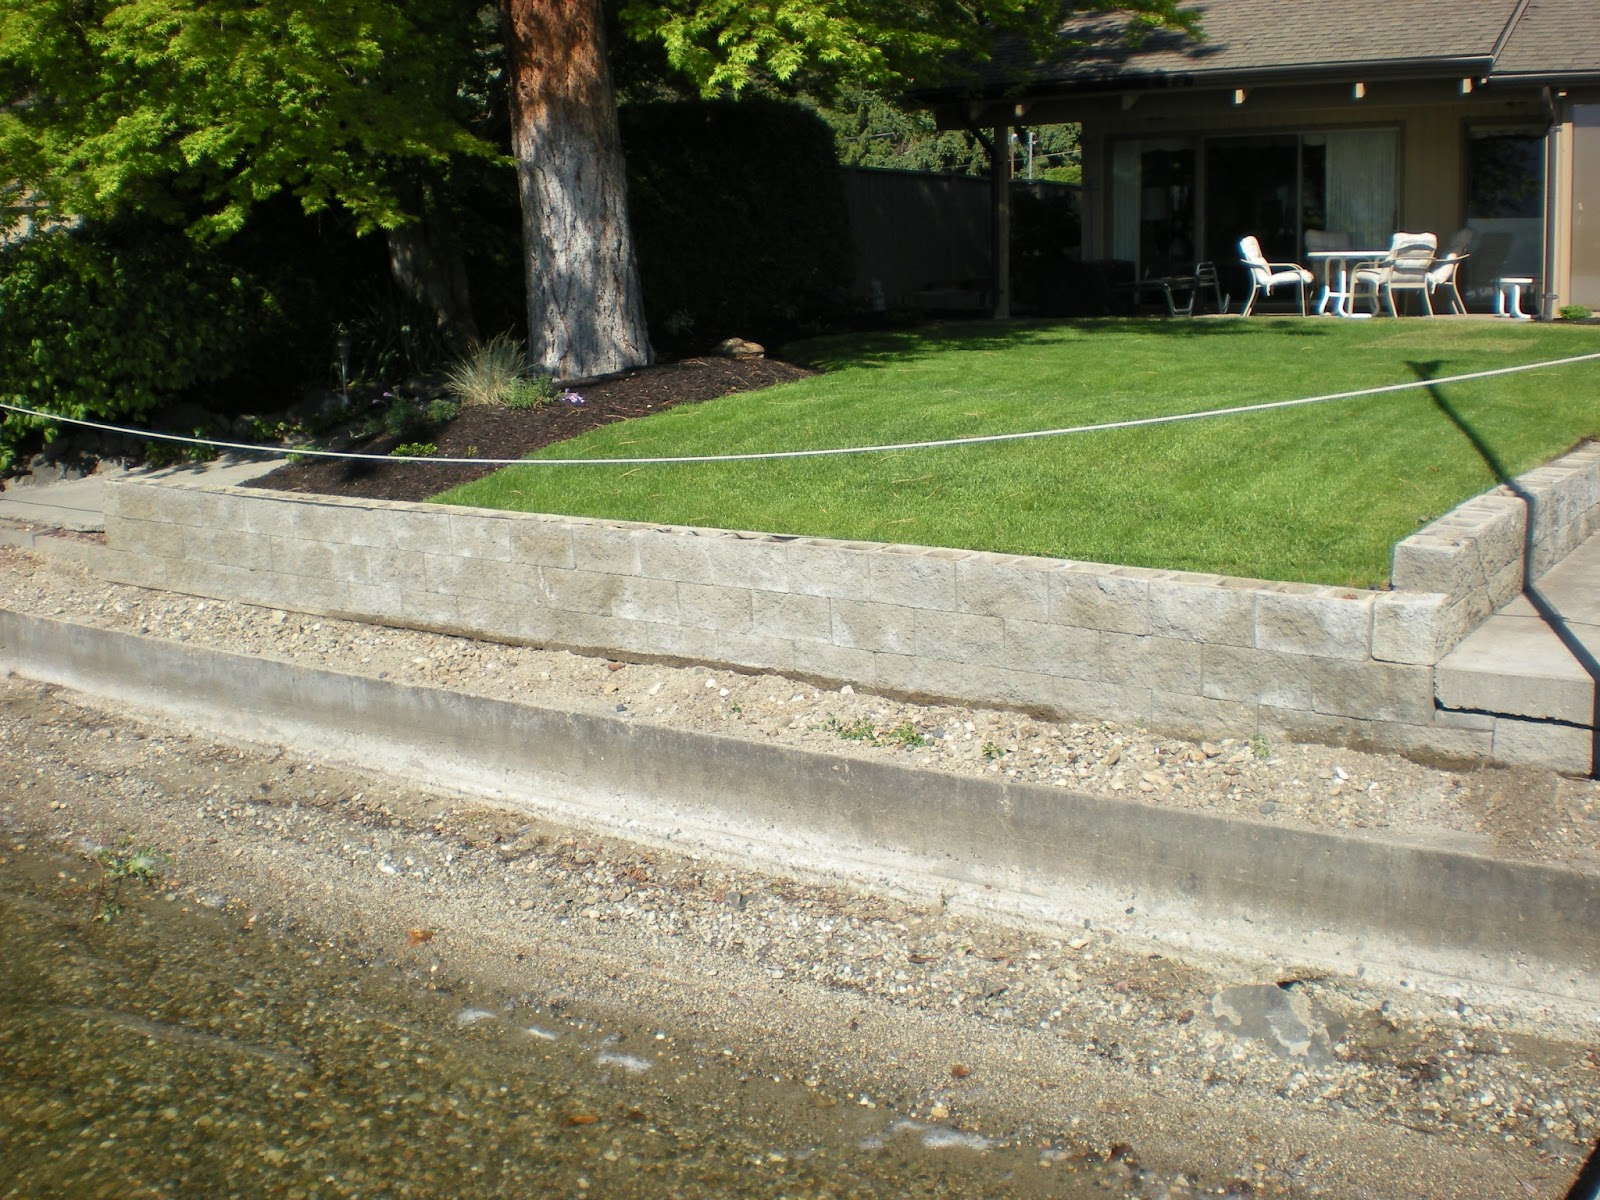 Acid Stain Your Concrete Block Retaining Wall Article By Staining Sealing Specialists At Mode In Kelowna Bc